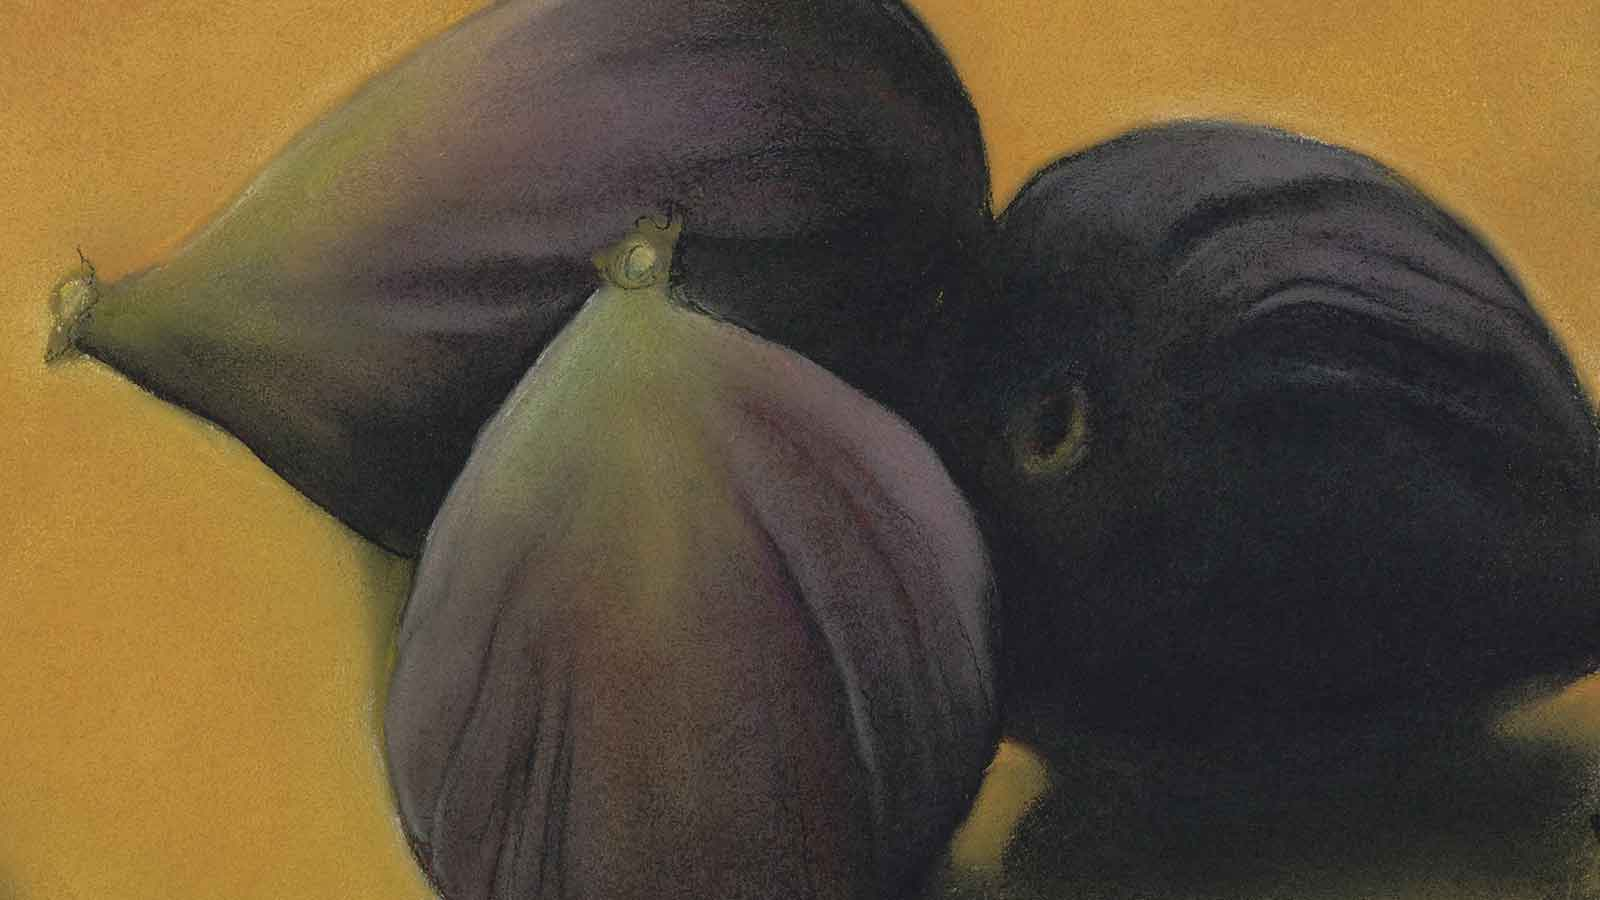 Painting of Figs by Sylvia Gonzalez on exhibit at the Gatehouse Restaurant, CIA at Greystone in the Napa Valley.